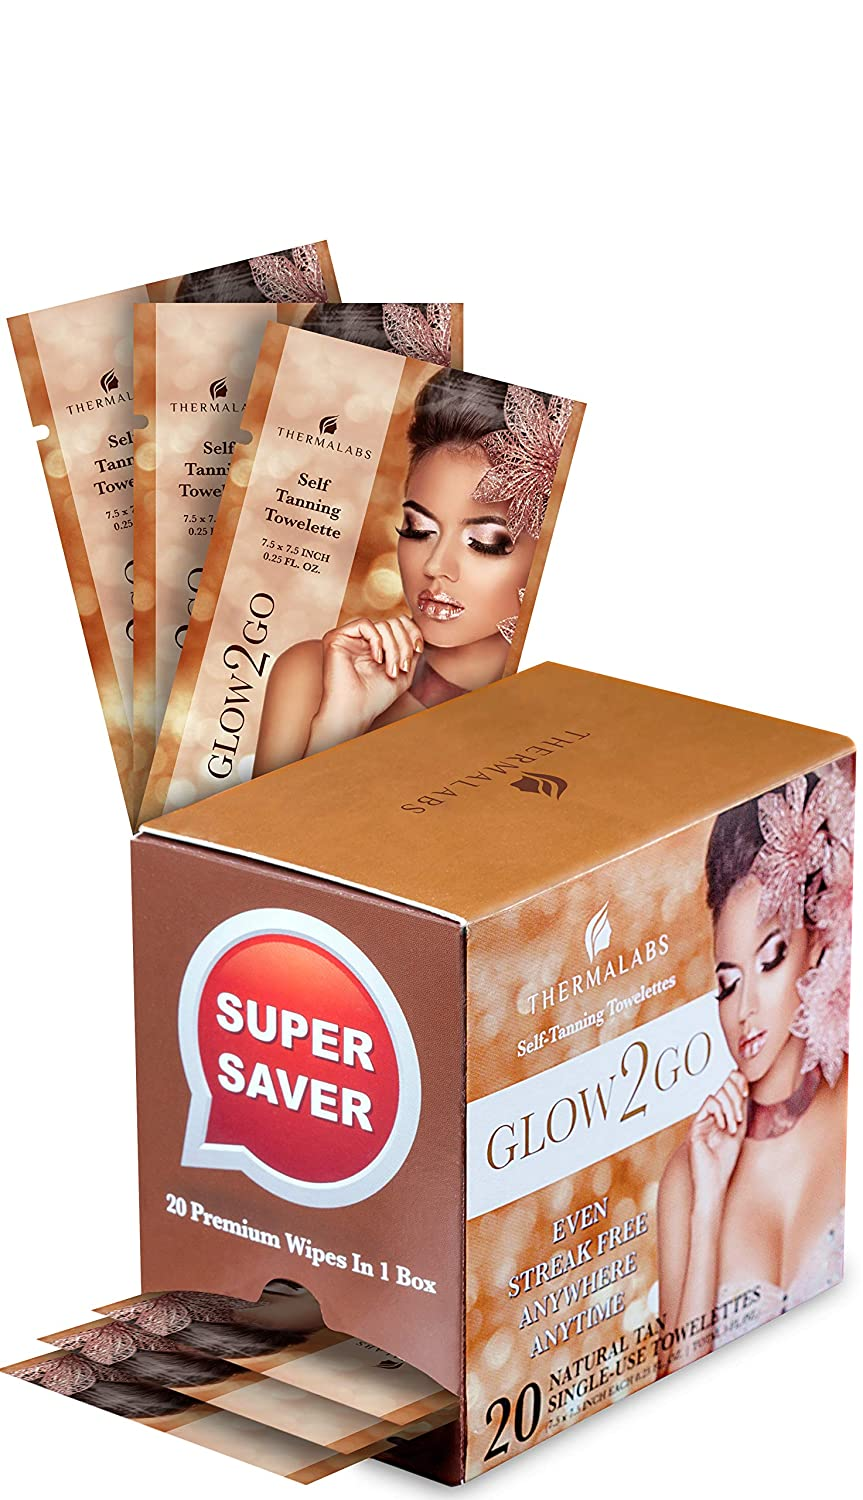 Original Self Tan Towelettes, Sunless Tanning Towels XL 20 Pack for Quick Sun Glow On the Go! Fair to Medium Half Body Self-Tanning Wipes. Use Tanner Towelette for Bronzing Face Too! Self-Tanner Towel Thermalabs TRML-G2G